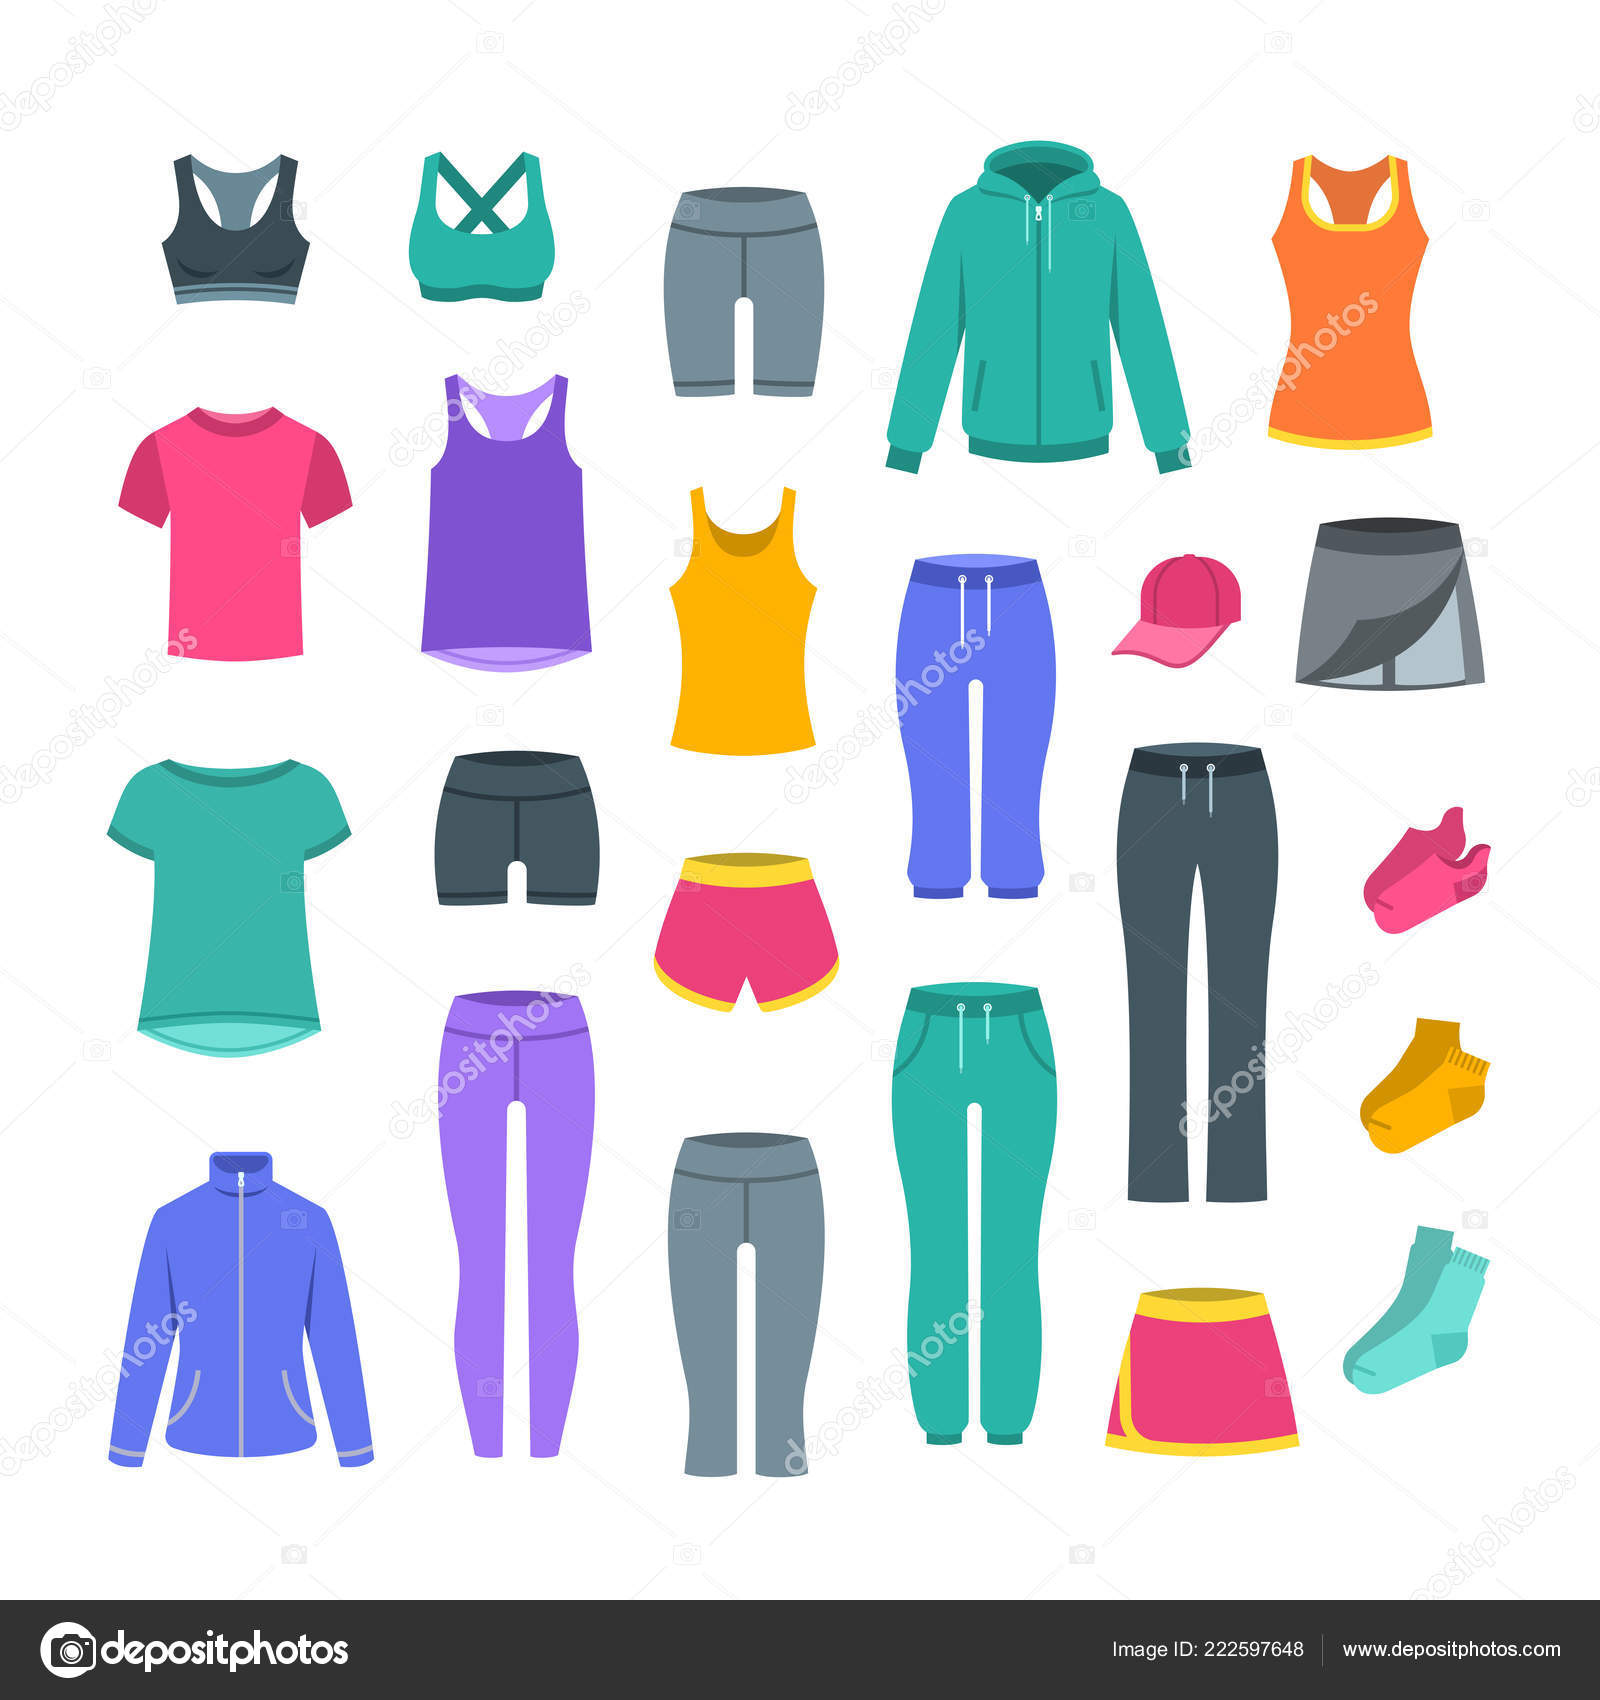 67138eb3565 Women Casual Clothes Fitness Training Basic Garments Gym Workout Vector —  Stock Vector